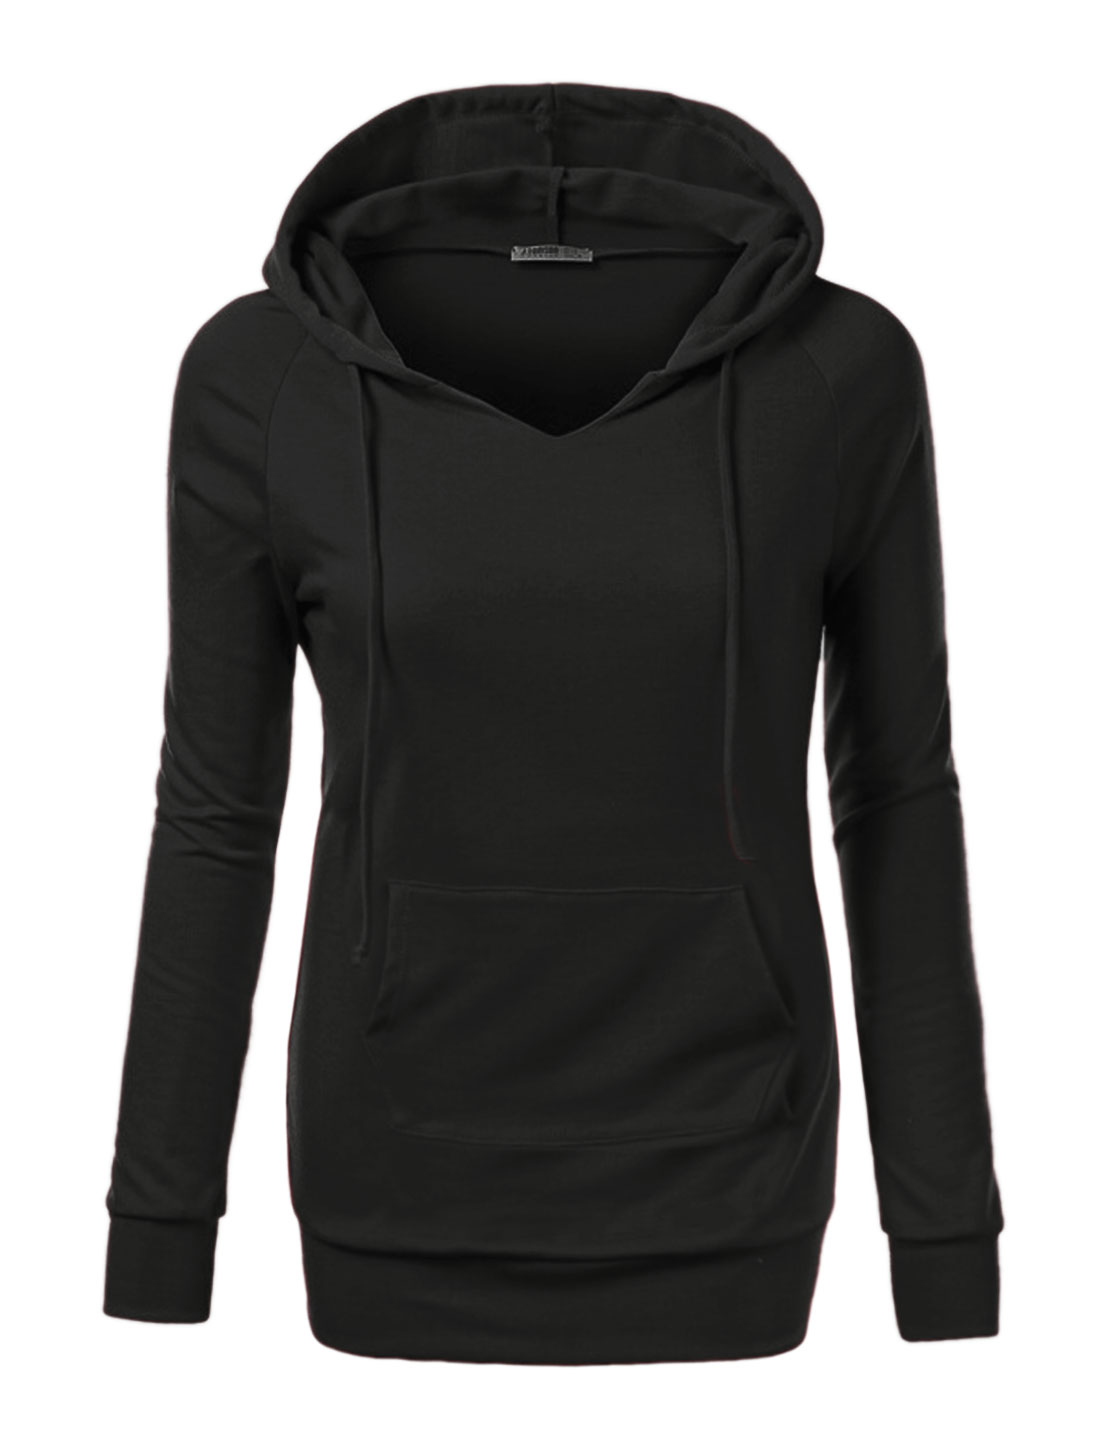 Women Raglan Sleeves Kangaroo Pocket Drawstring Tunic Hoodie Black S